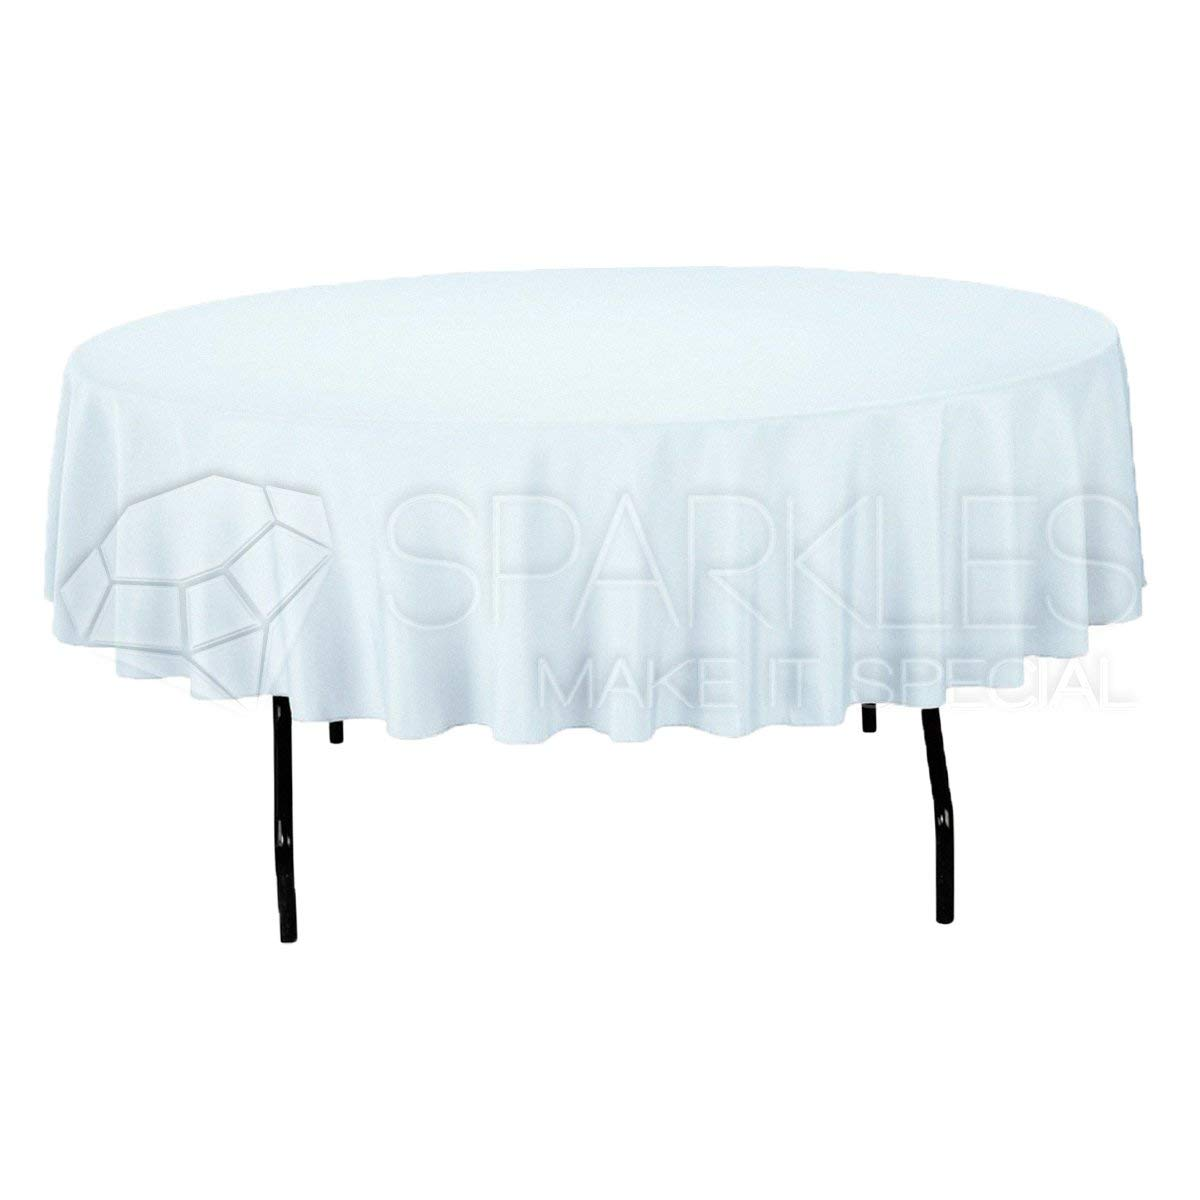 "Sparkles Make It Special 10-pcs 90"" Inch Round Polyester Cloth Fabric Linen Tablecloth - Wedding Reception Restaurant Banquet Party - Machine Washable - White"